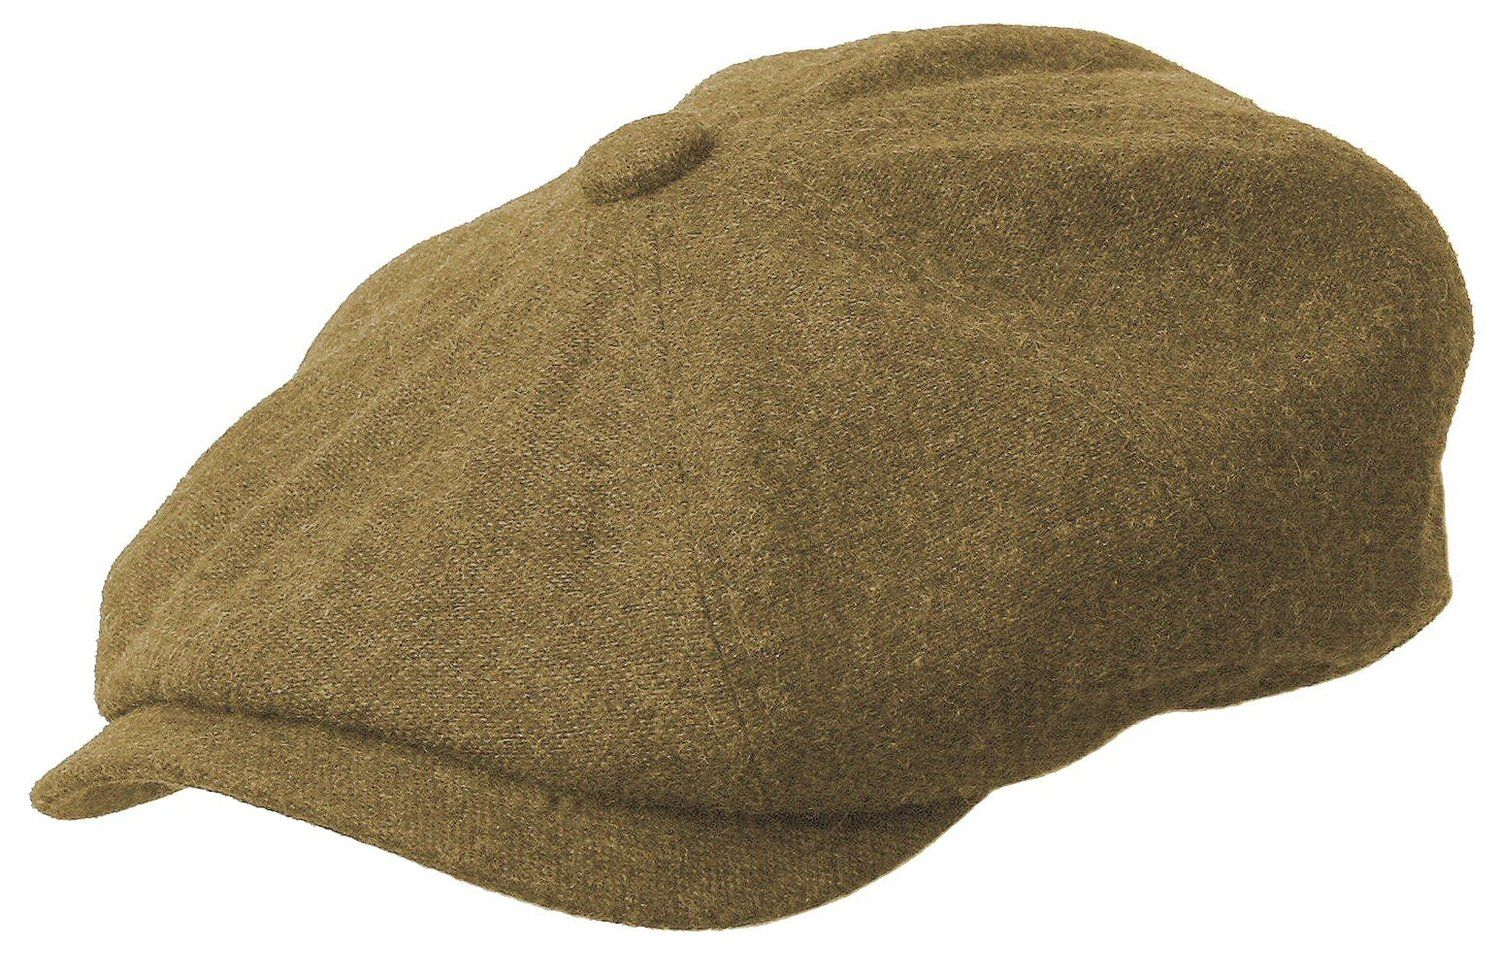 5552fbce2eae6 Mens 1920s Style Hats and Caps ROOSTER Wool Tweed Newsboy Gatsby Ivy Cap  Golf Cabbie Driving Hat $35.00 AT vintagedancer.com